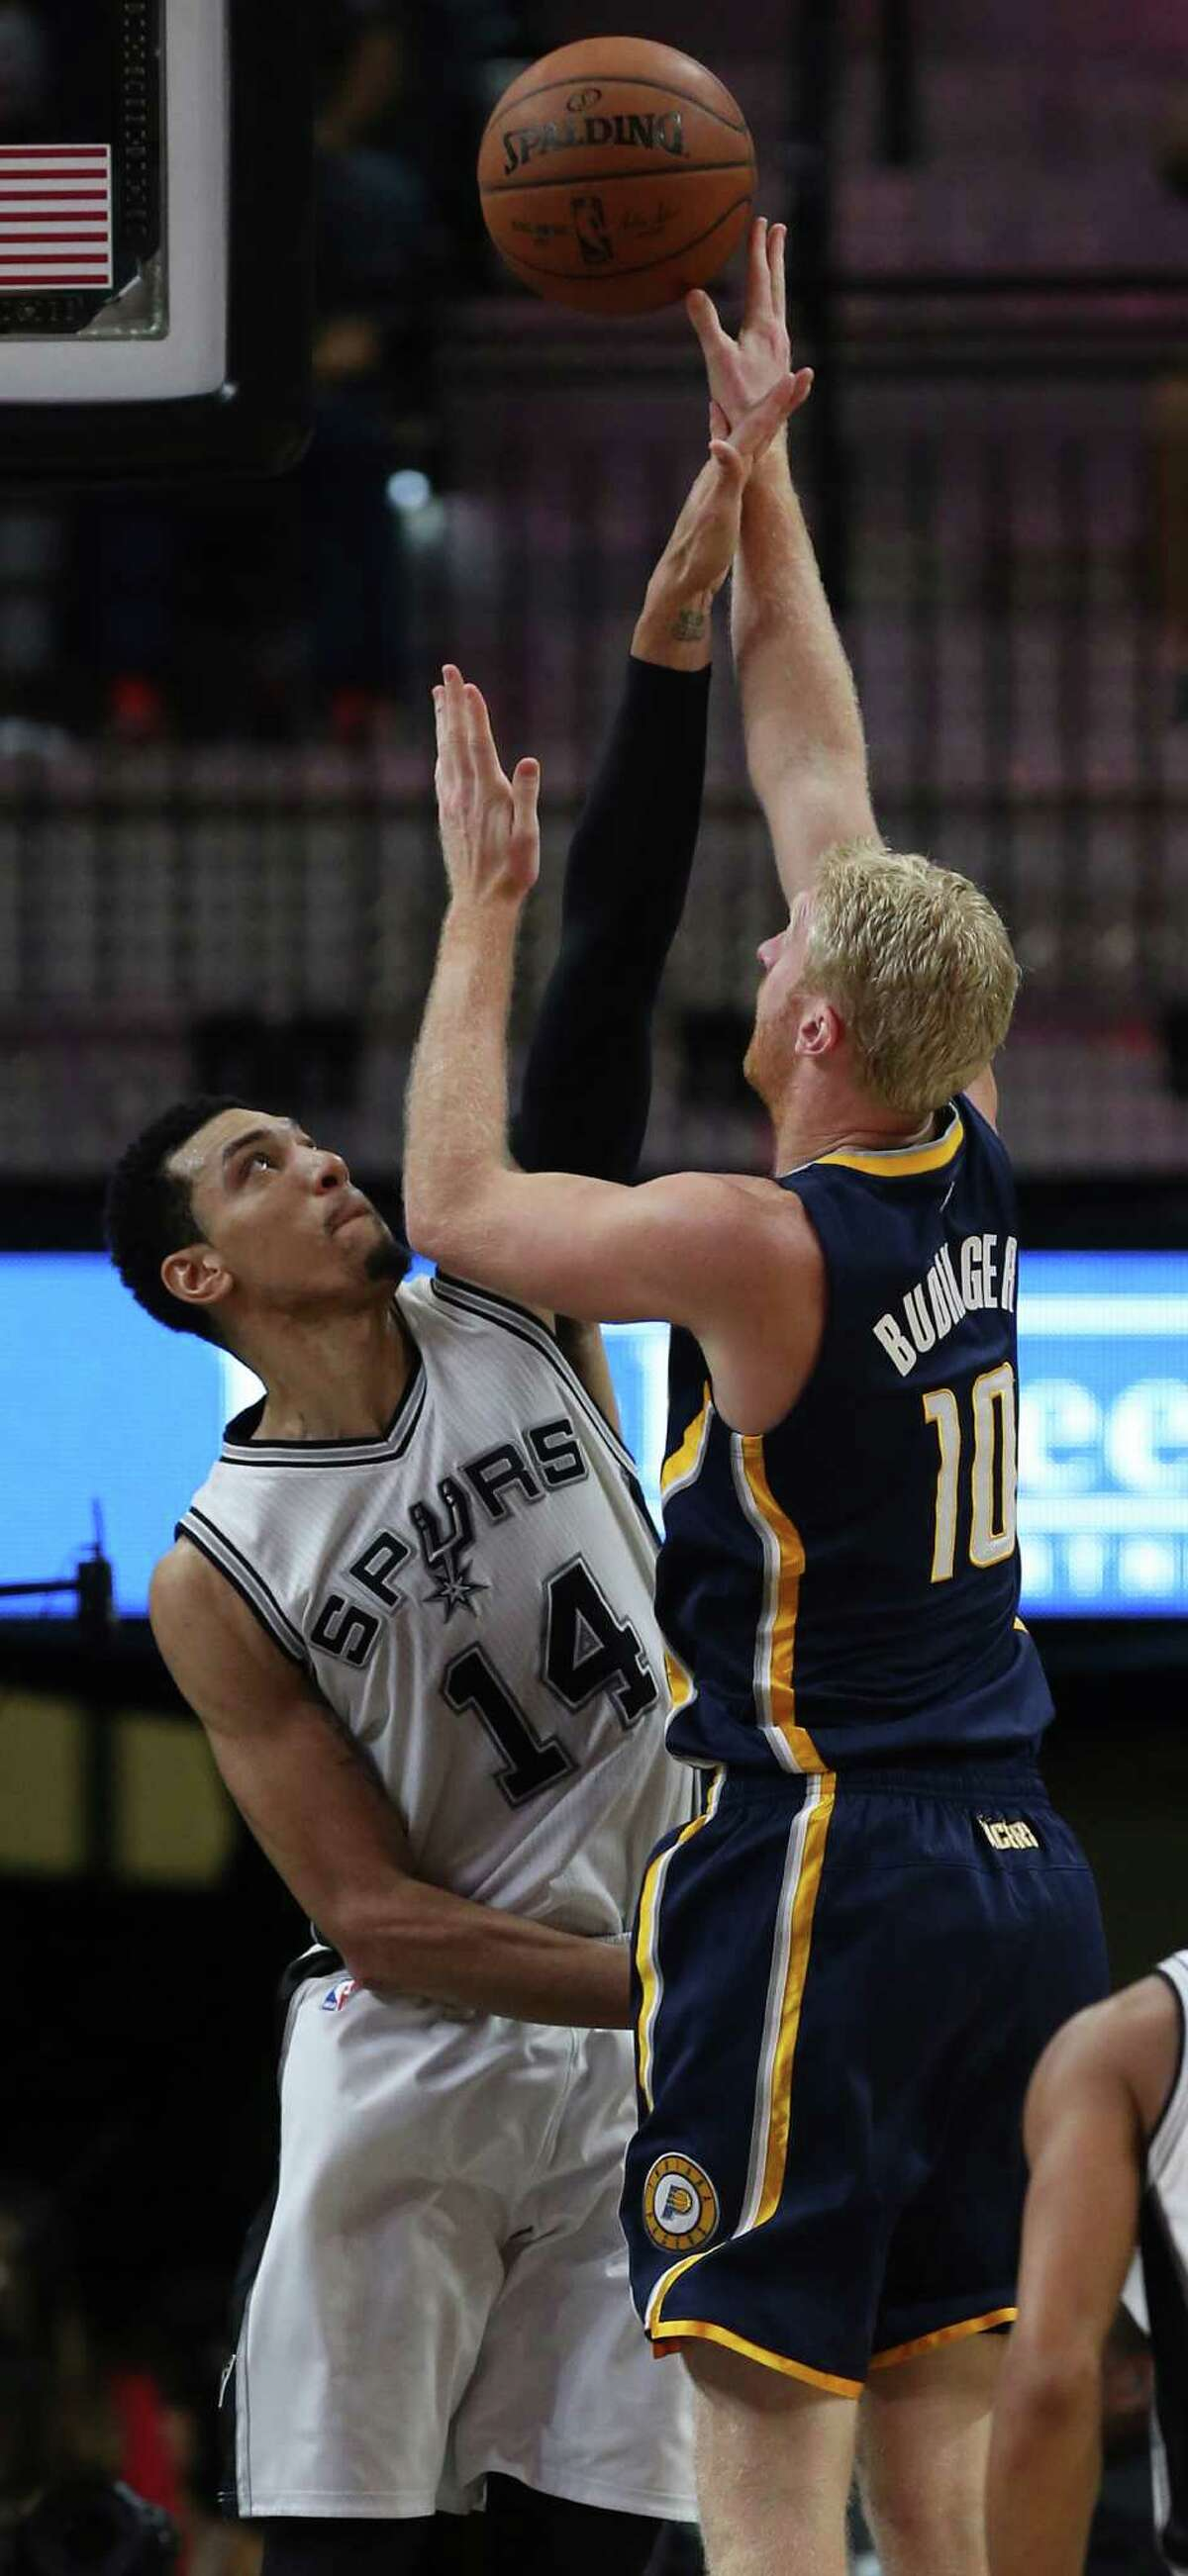 San Antonio Spurs' Danny Green blocks a shot by Indiana Pacers' Chase Budinger during the second half at the AT&T Center, Monday, Dec. 21, 2015. The Spurs won, 106-92.